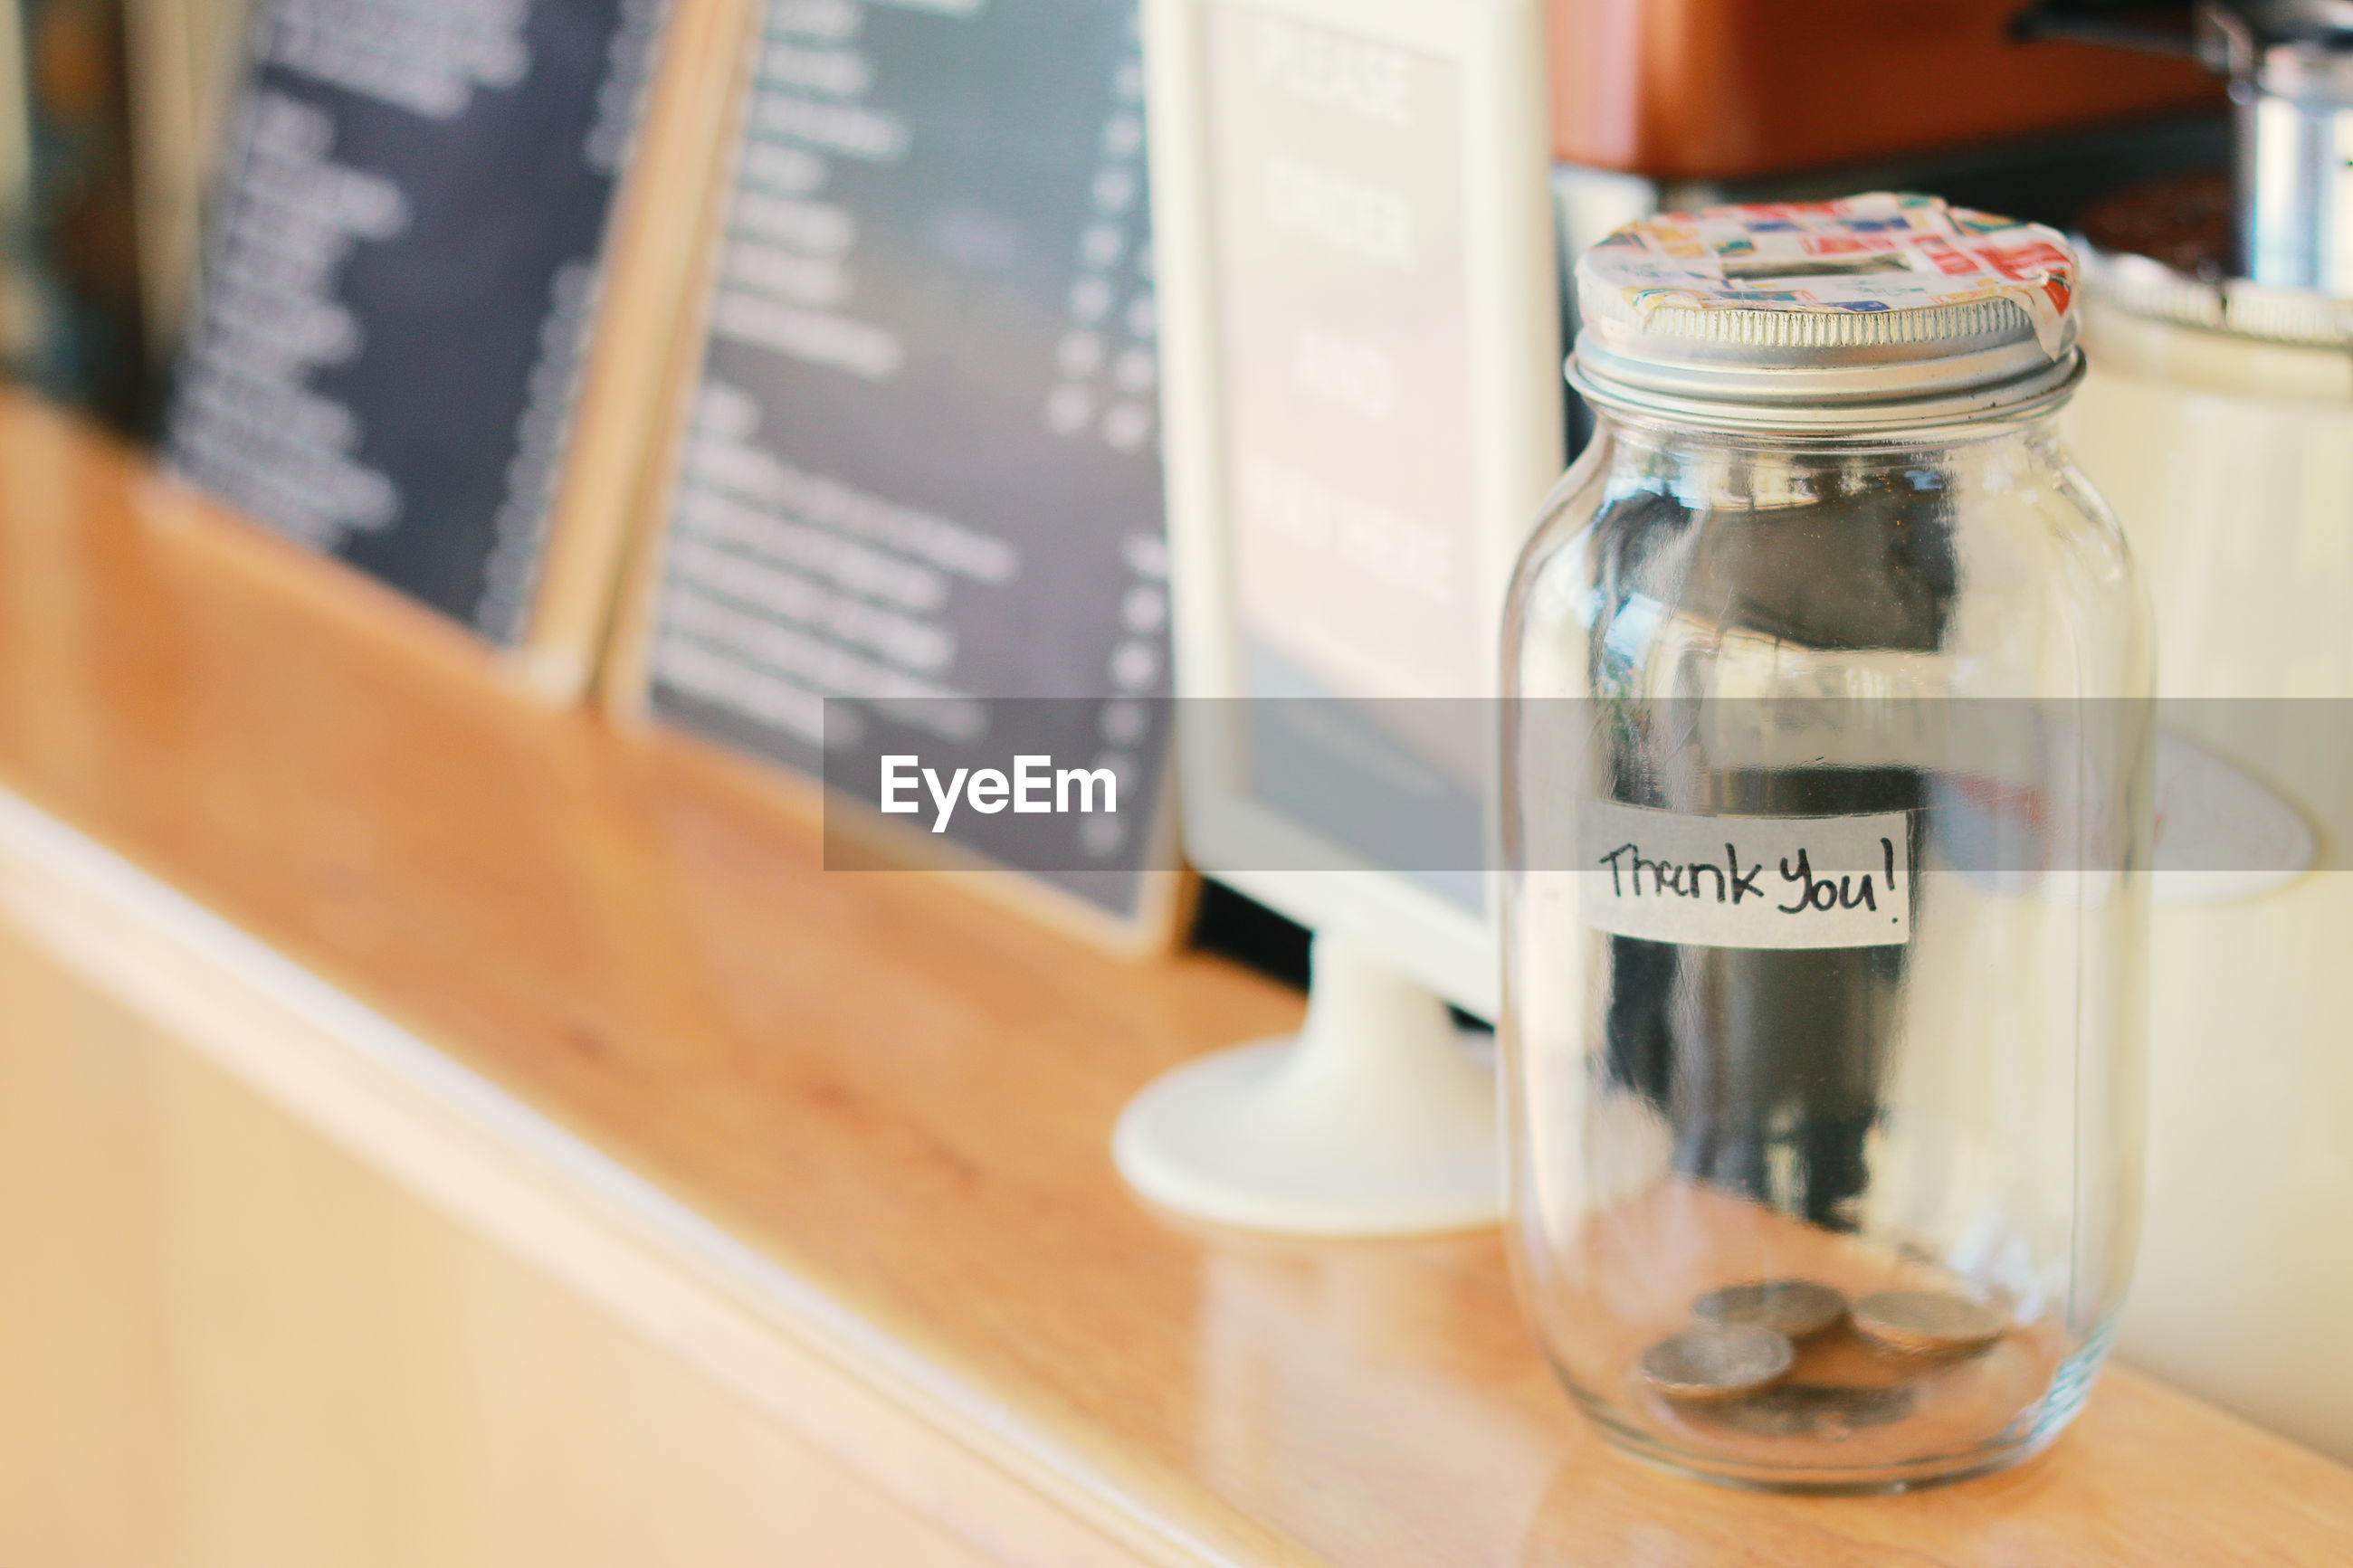 Close-up of coins in glass jar on table at restaurant